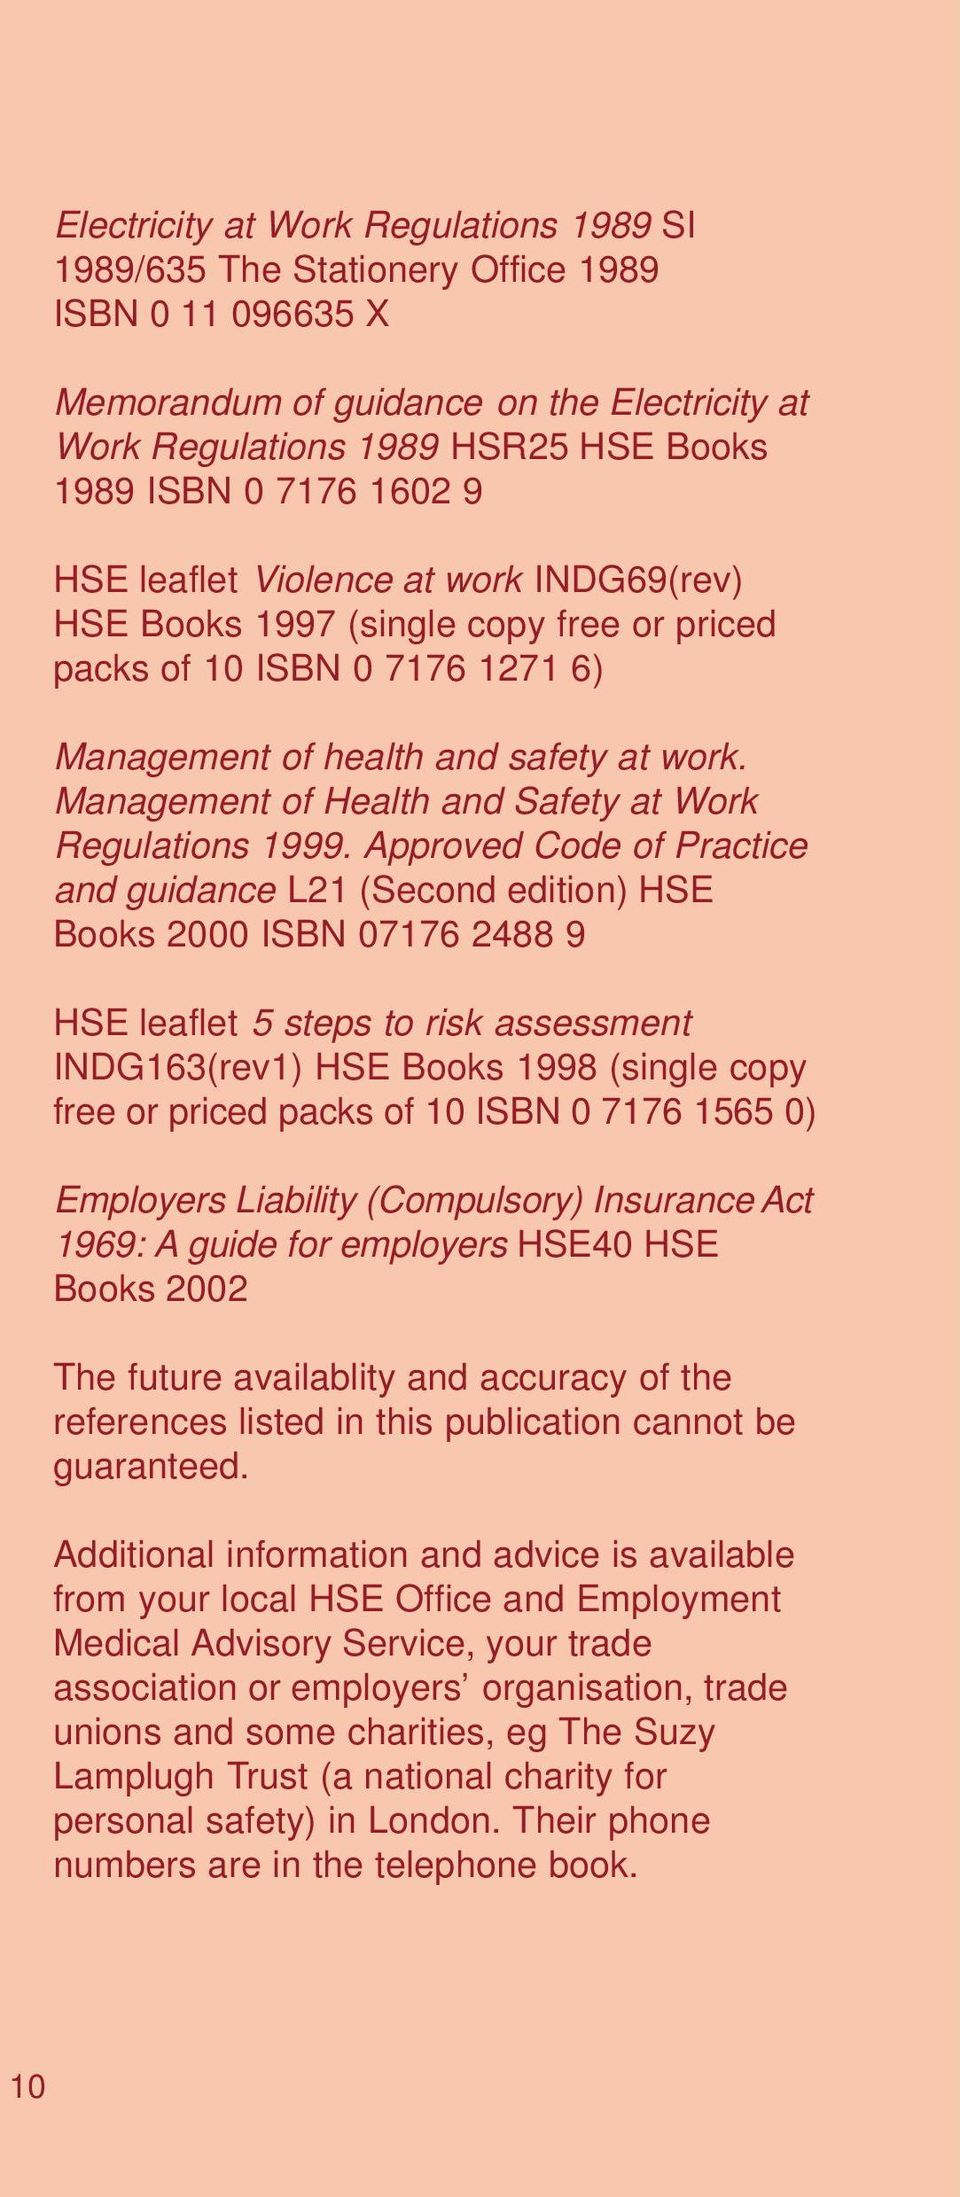 Management of Health and Safety at Work Regulations 1999.